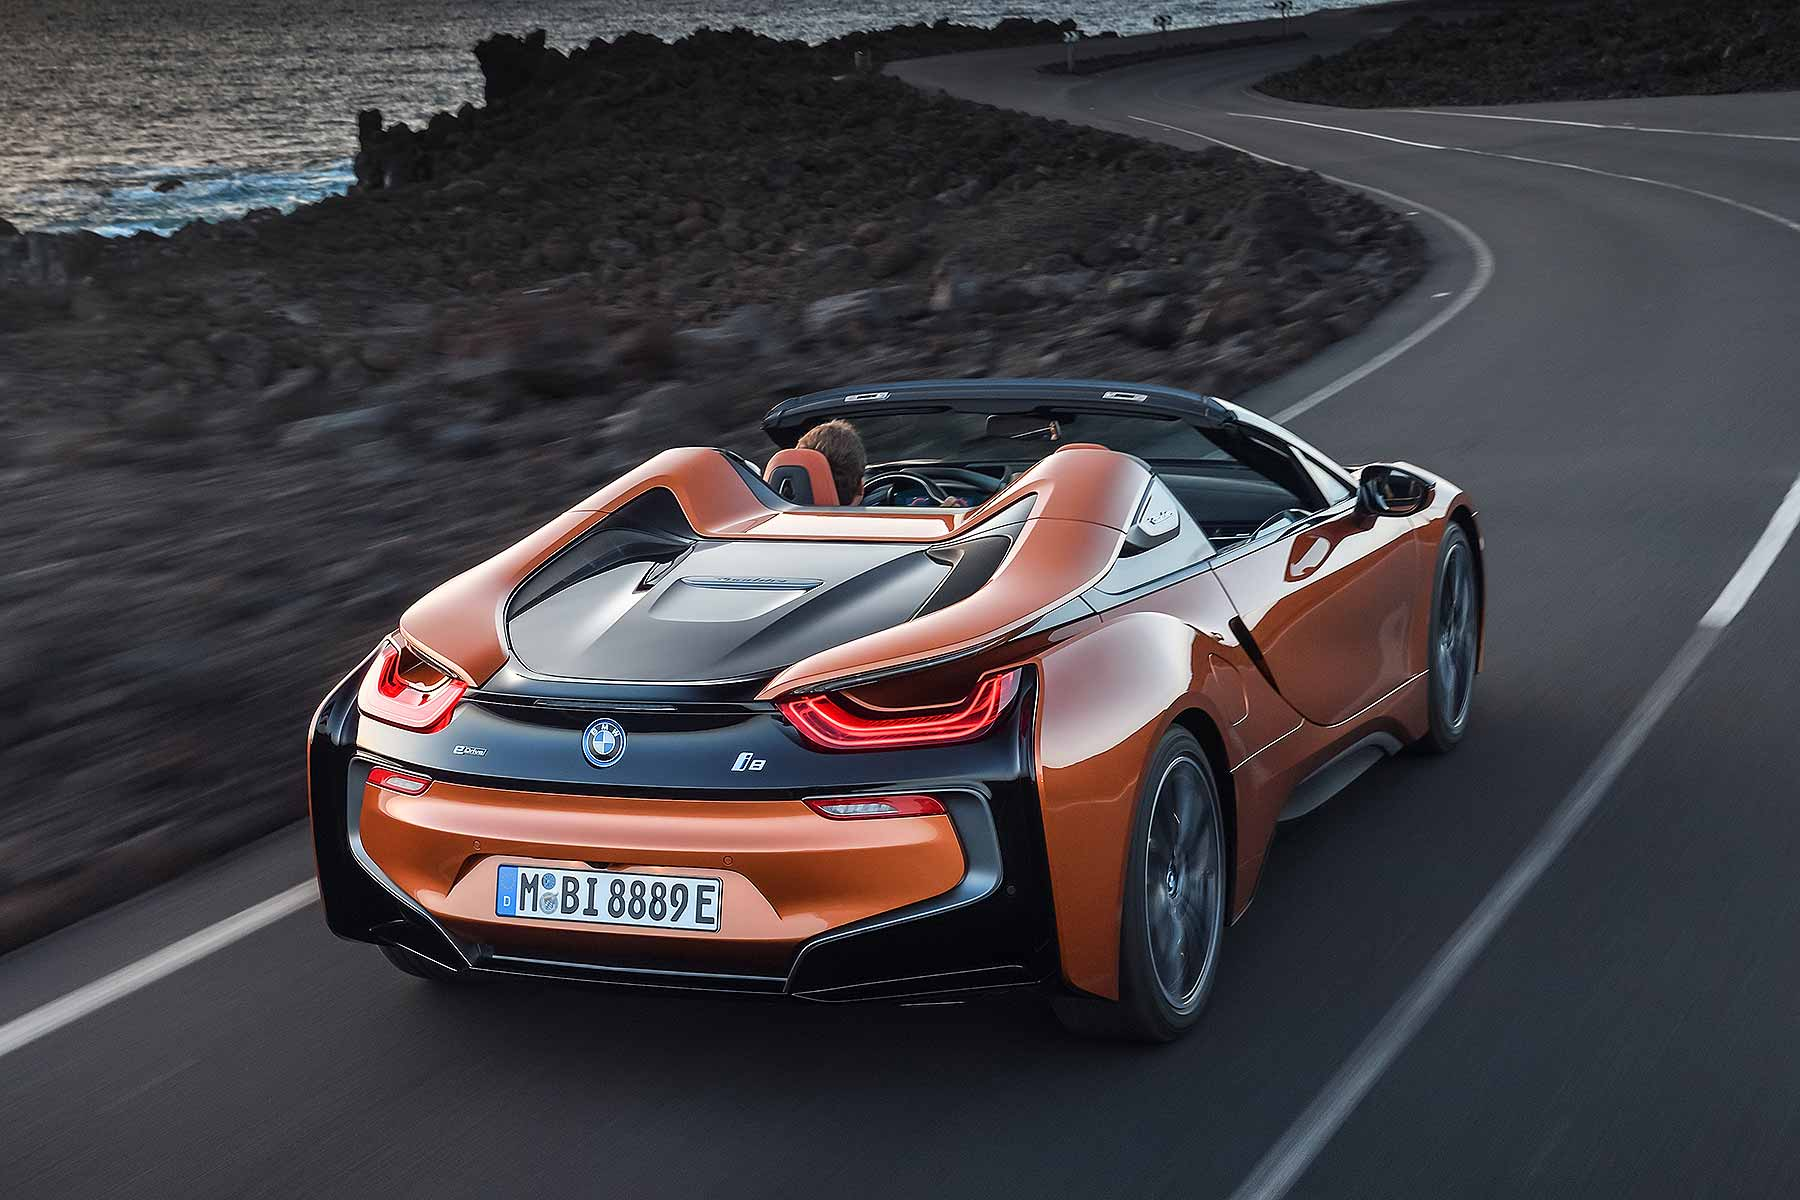 Bmw Has Finally Revealed The I8 Roadster In La Motoring Research